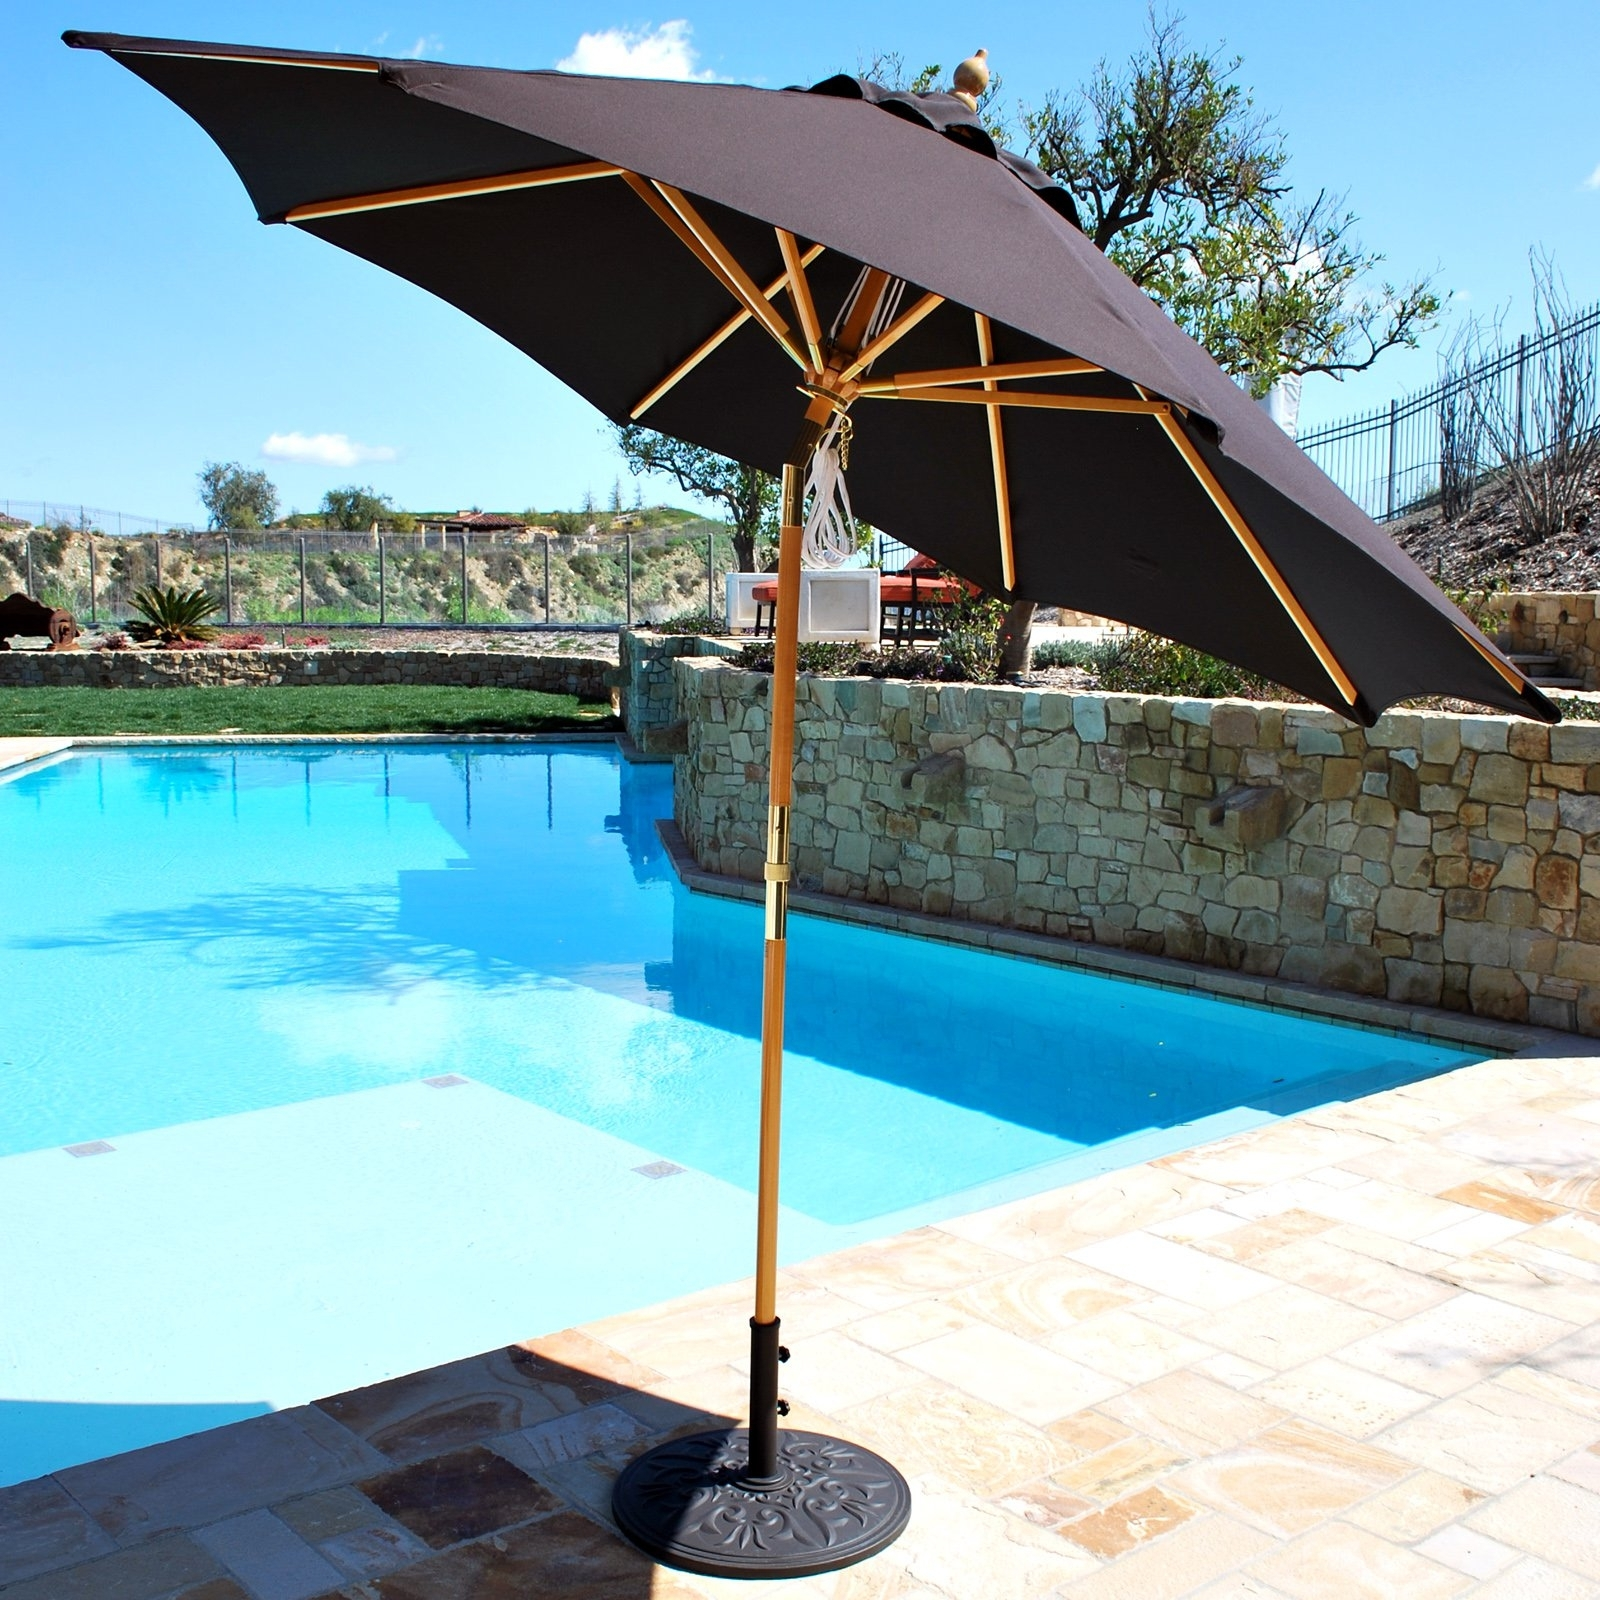 Popular Free Standing Patio Umbrellas Intended For Gypsy Best Free Standing Patio Umbrella F87x About Remodel Modern (View 5 of 20)